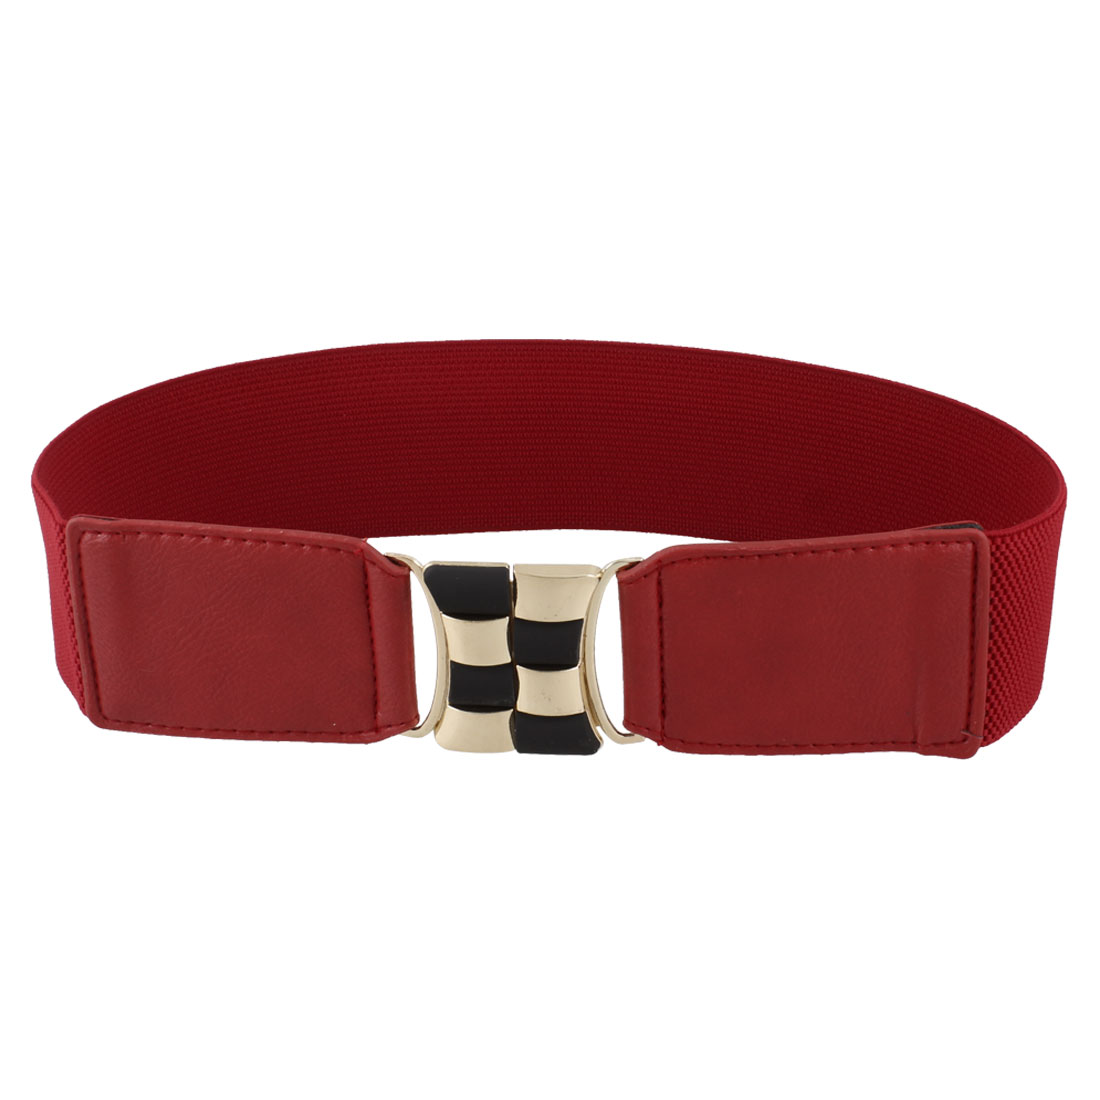 Elastic Band Gold Tone Black Checks Decor 6cm Width Waist Belt Red for Lady